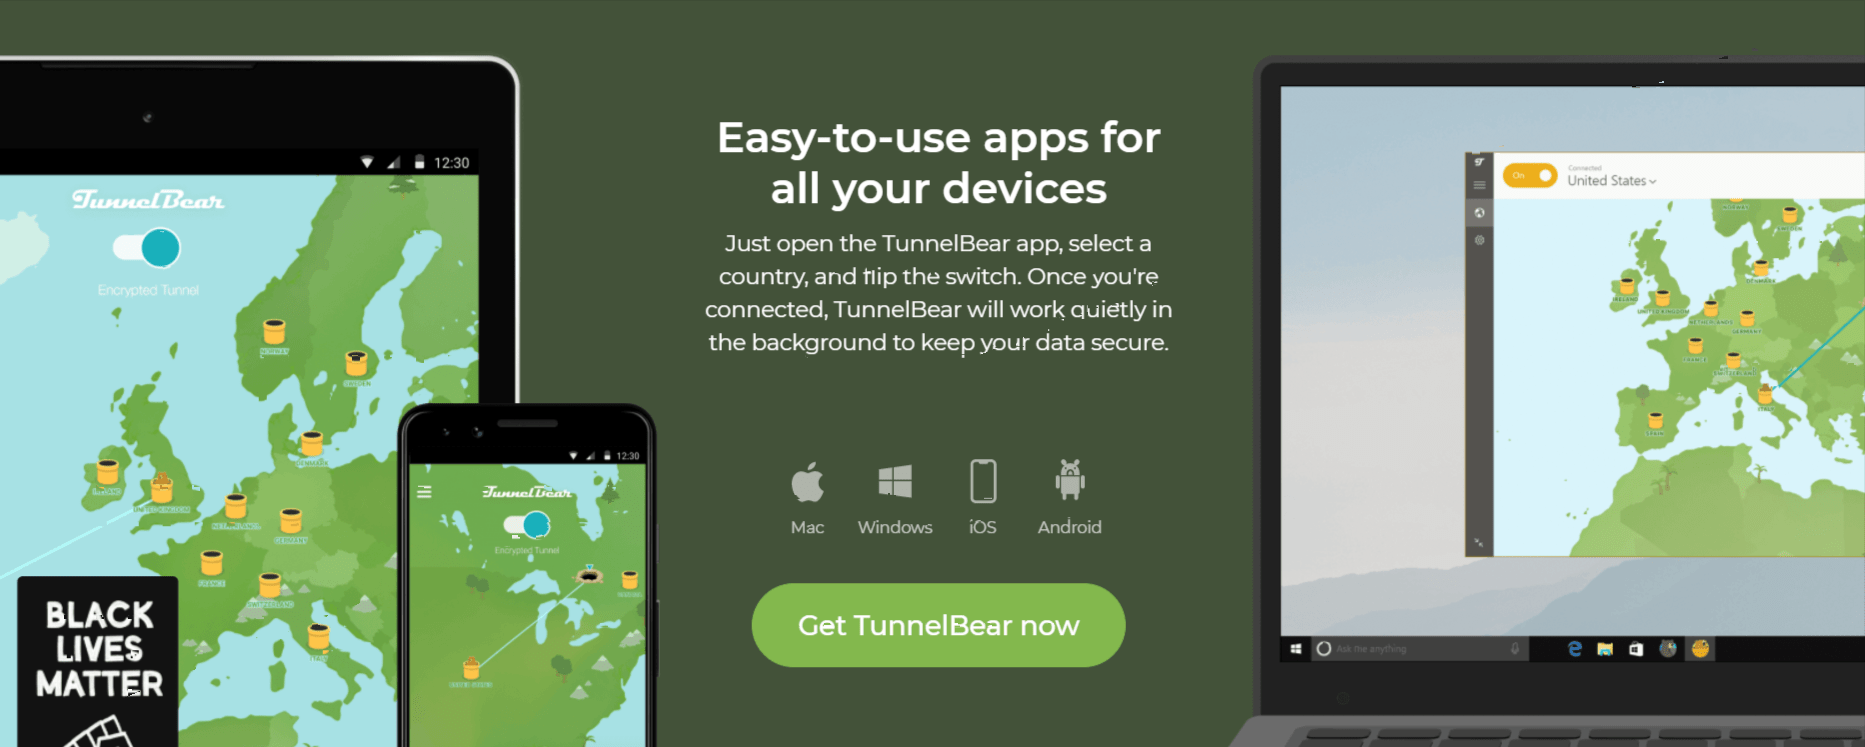 Easy to use app for all applications